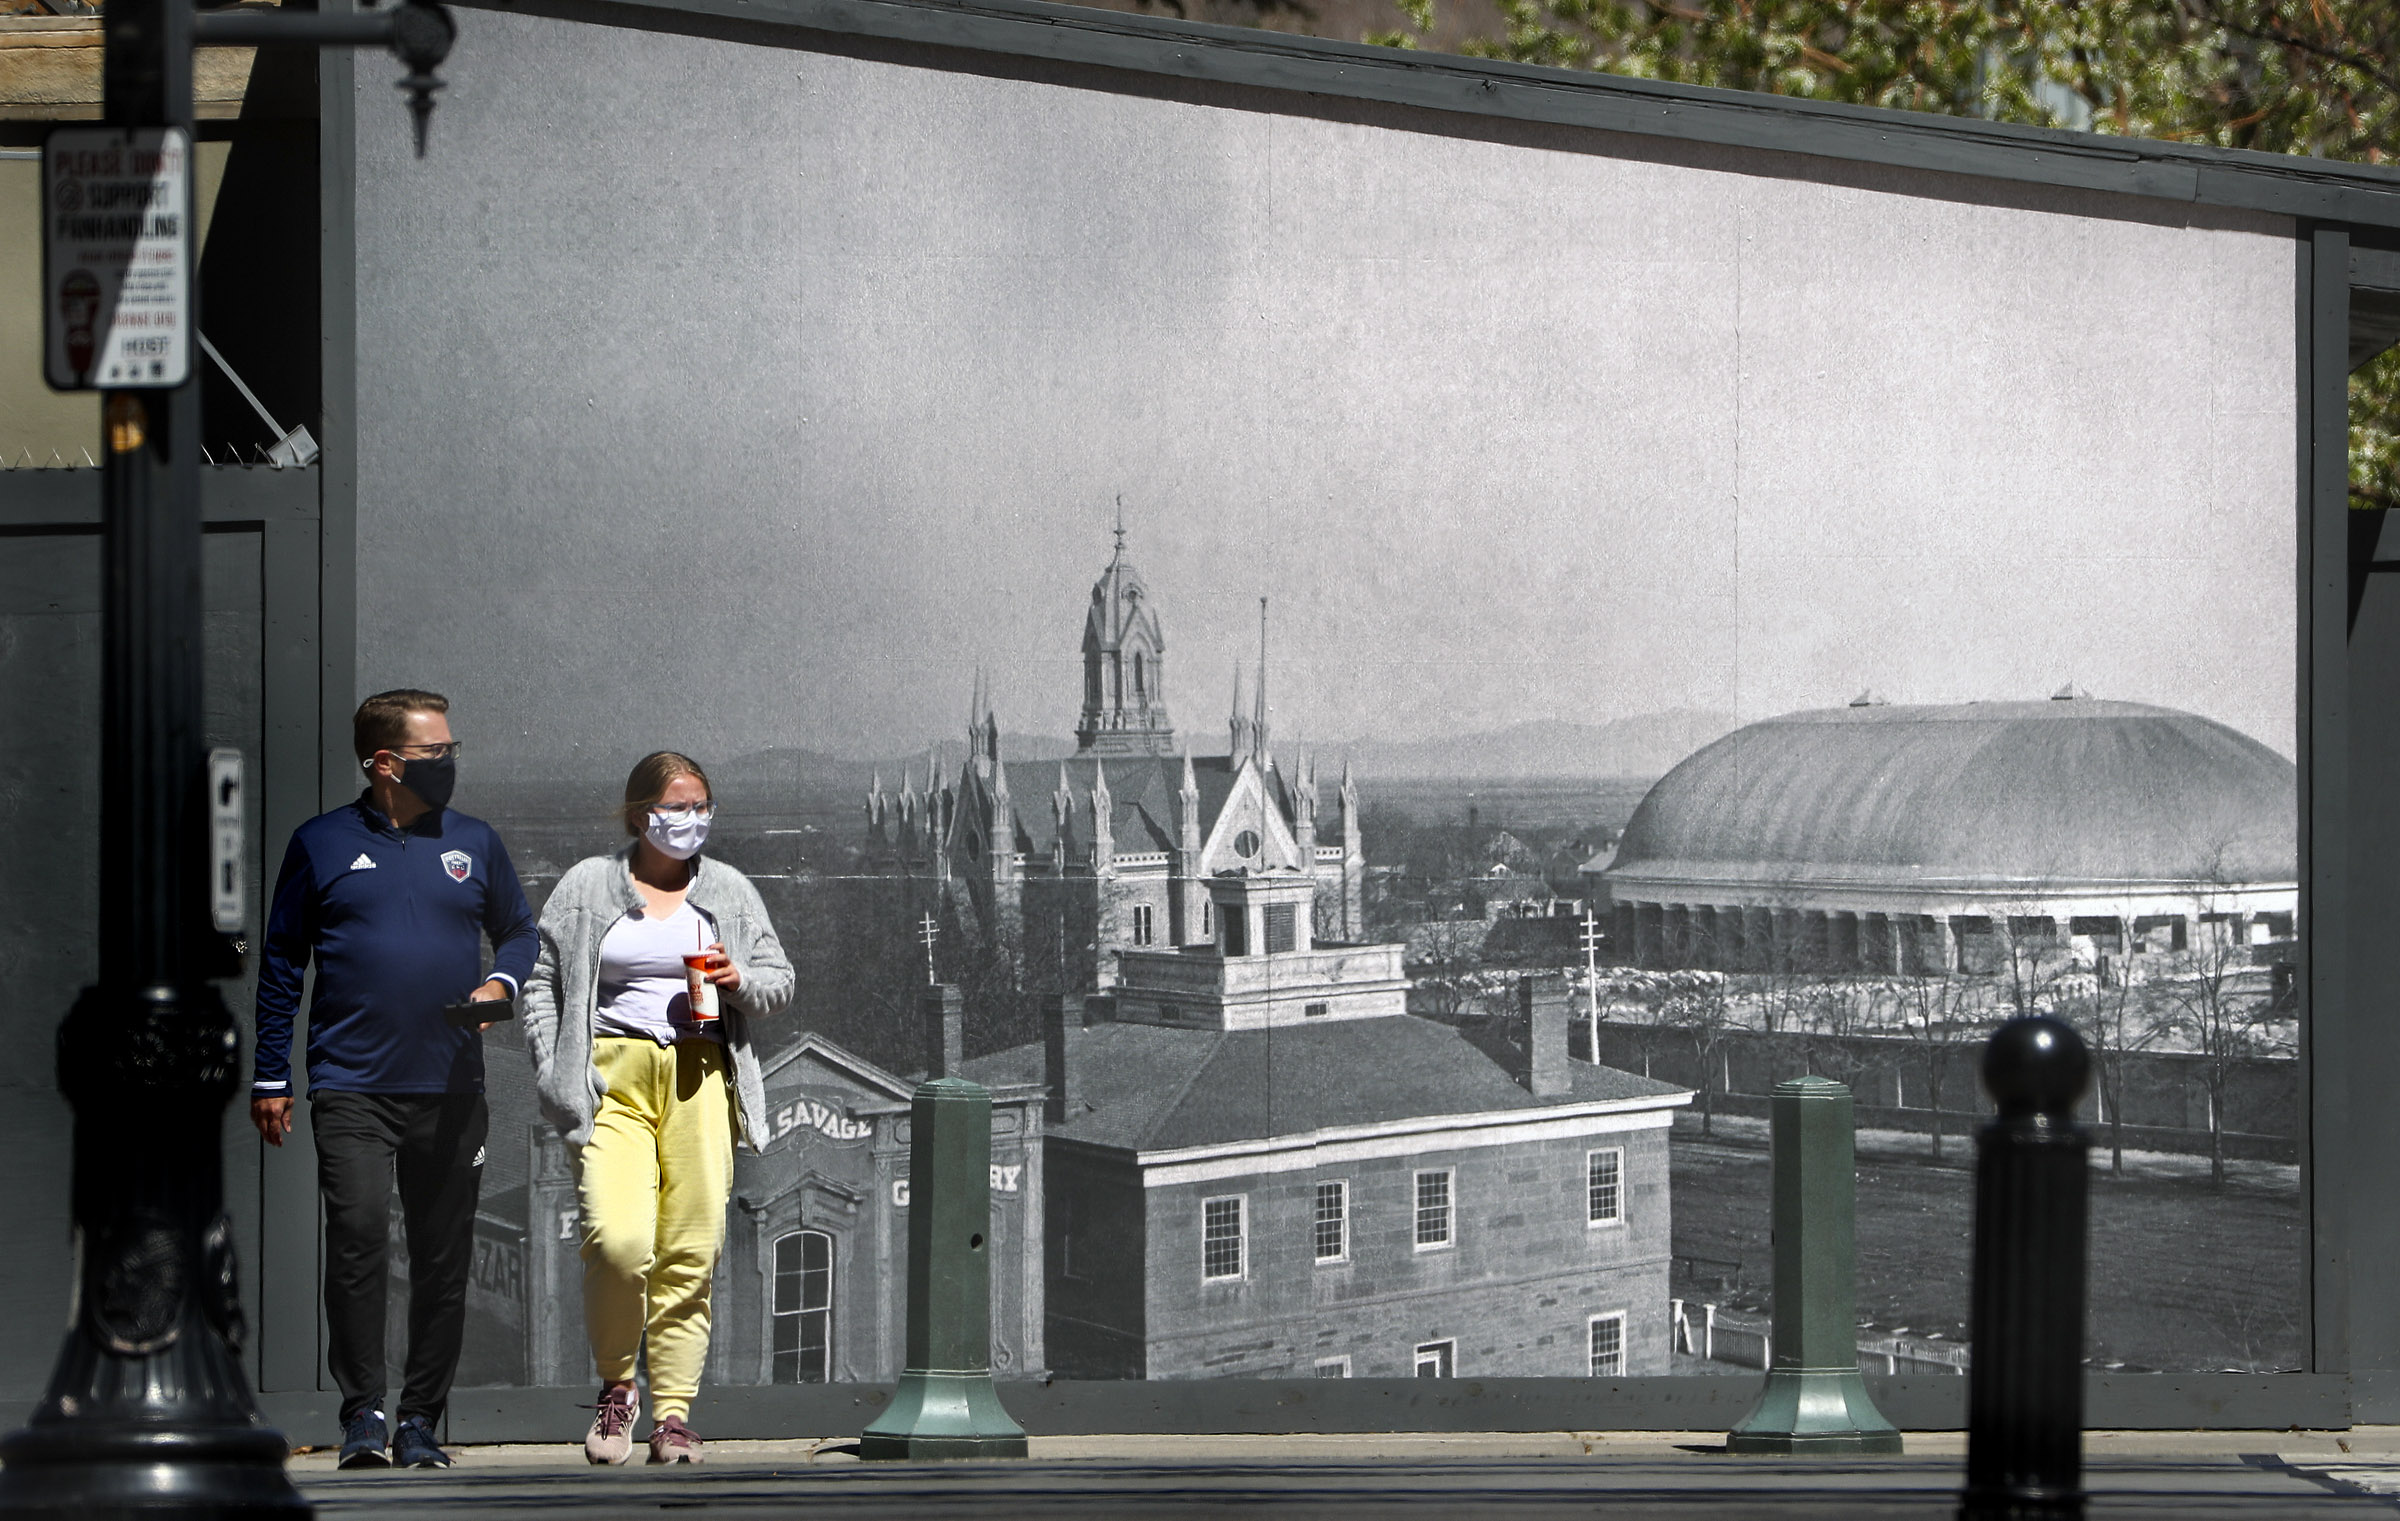 Pedestrians wearing masks cross South Temple as they walk along Main Street in front of a historical mural of Temple Square in downtown Salt Lake City on Friday, April 9, 2021.